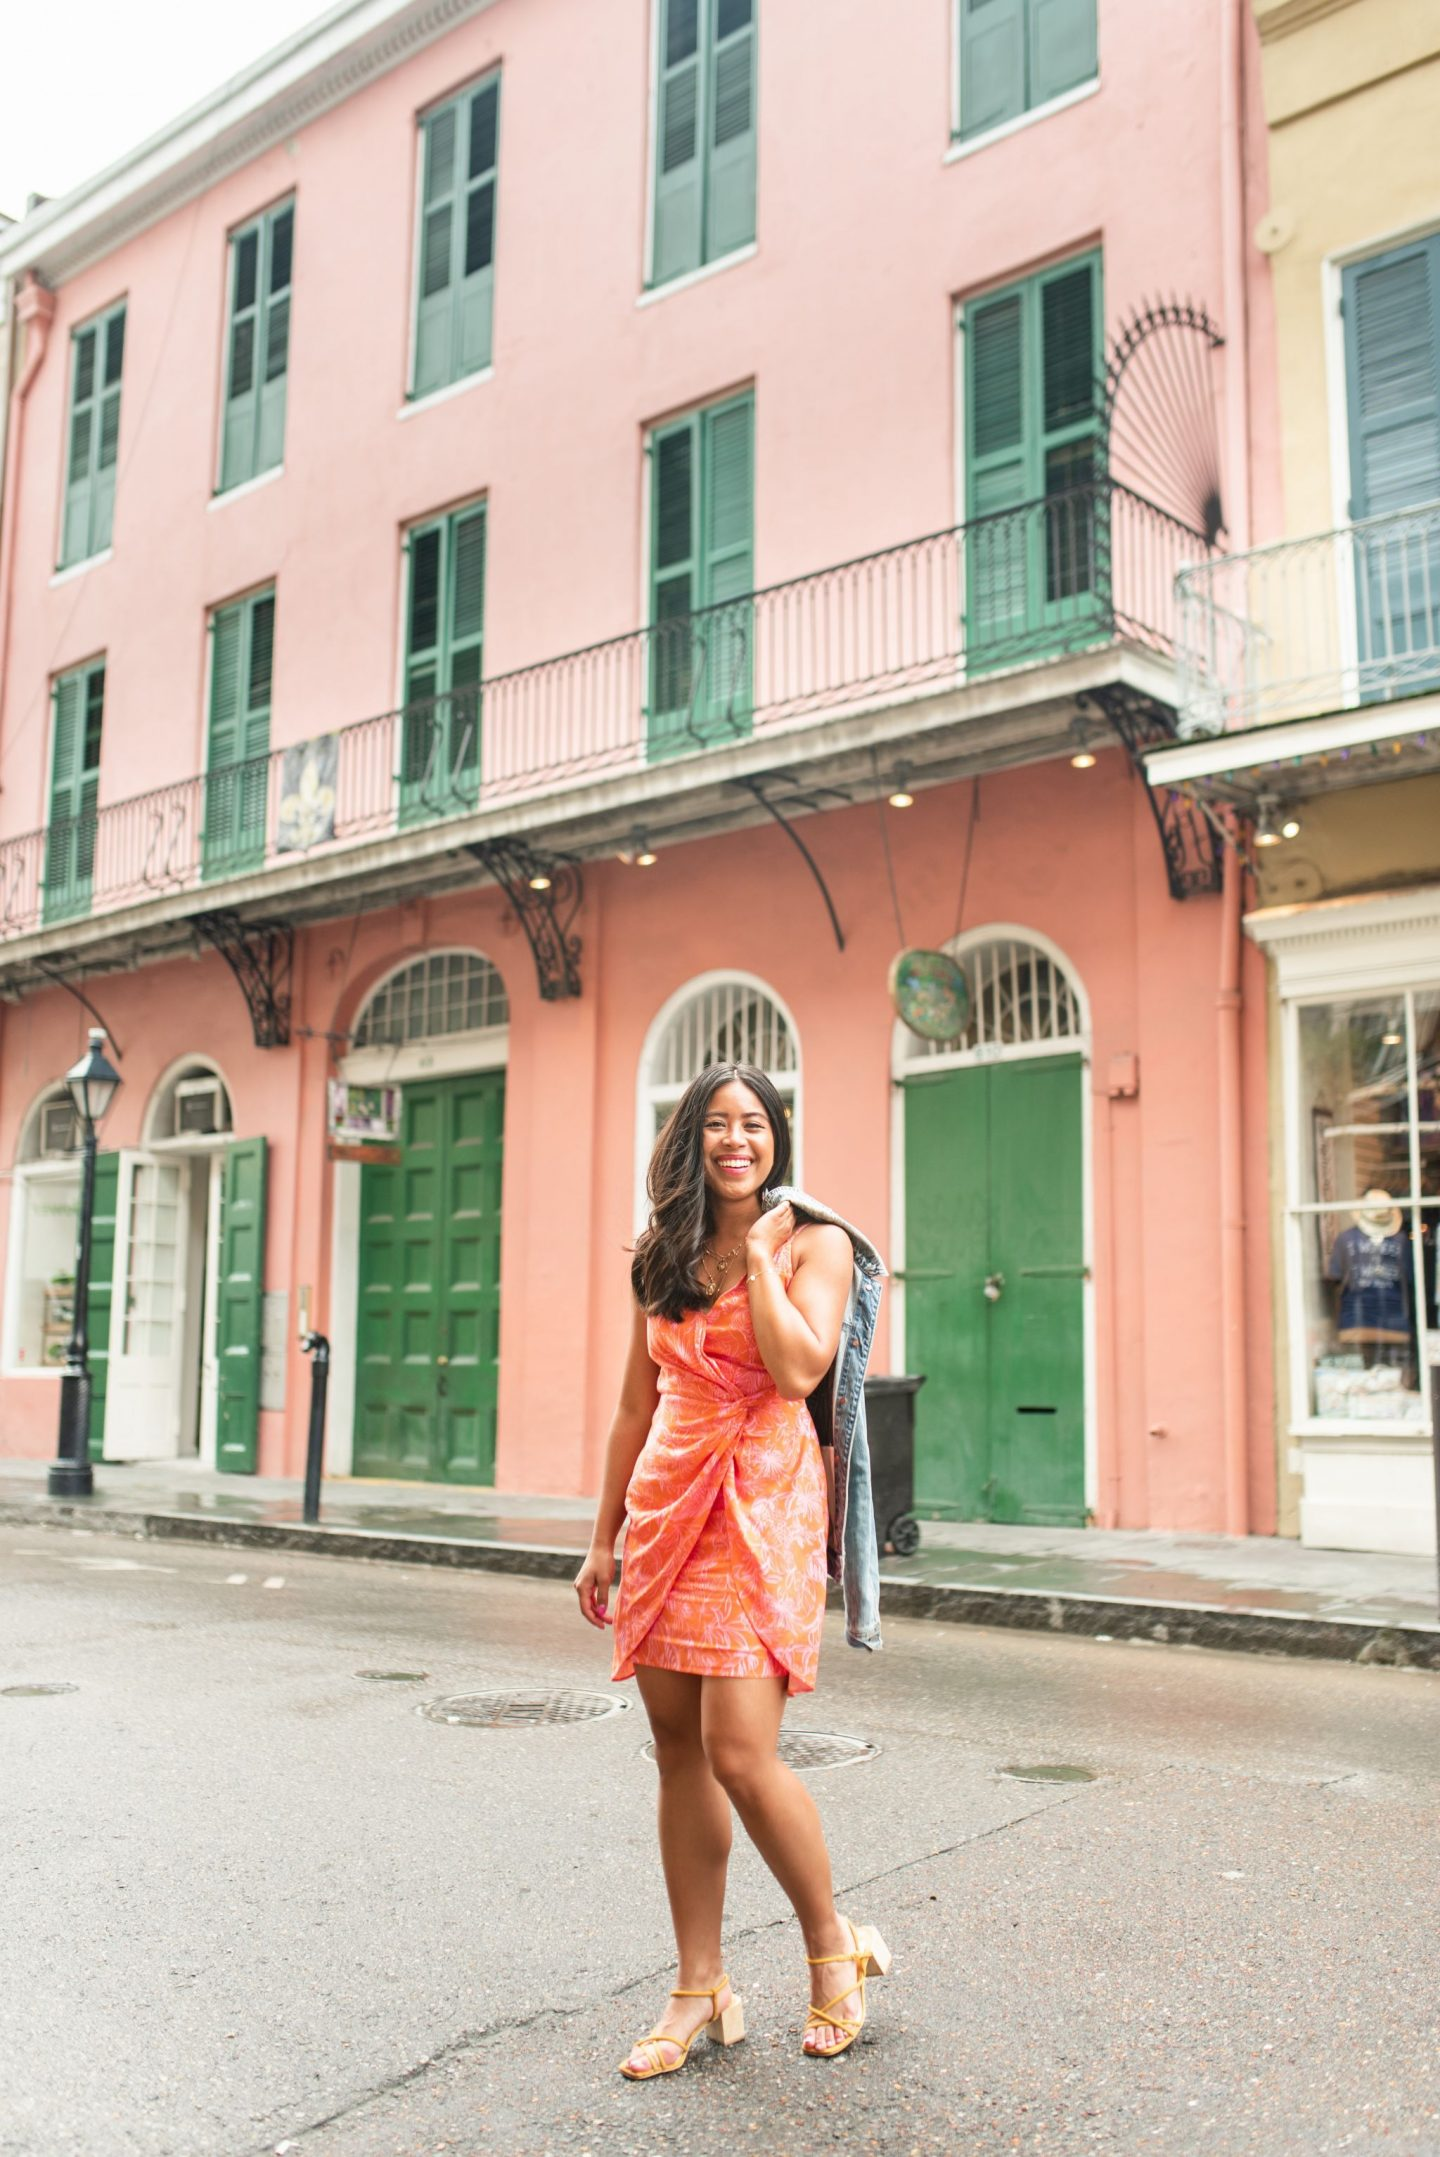 Top 10 Photo Spots in the French Quarter